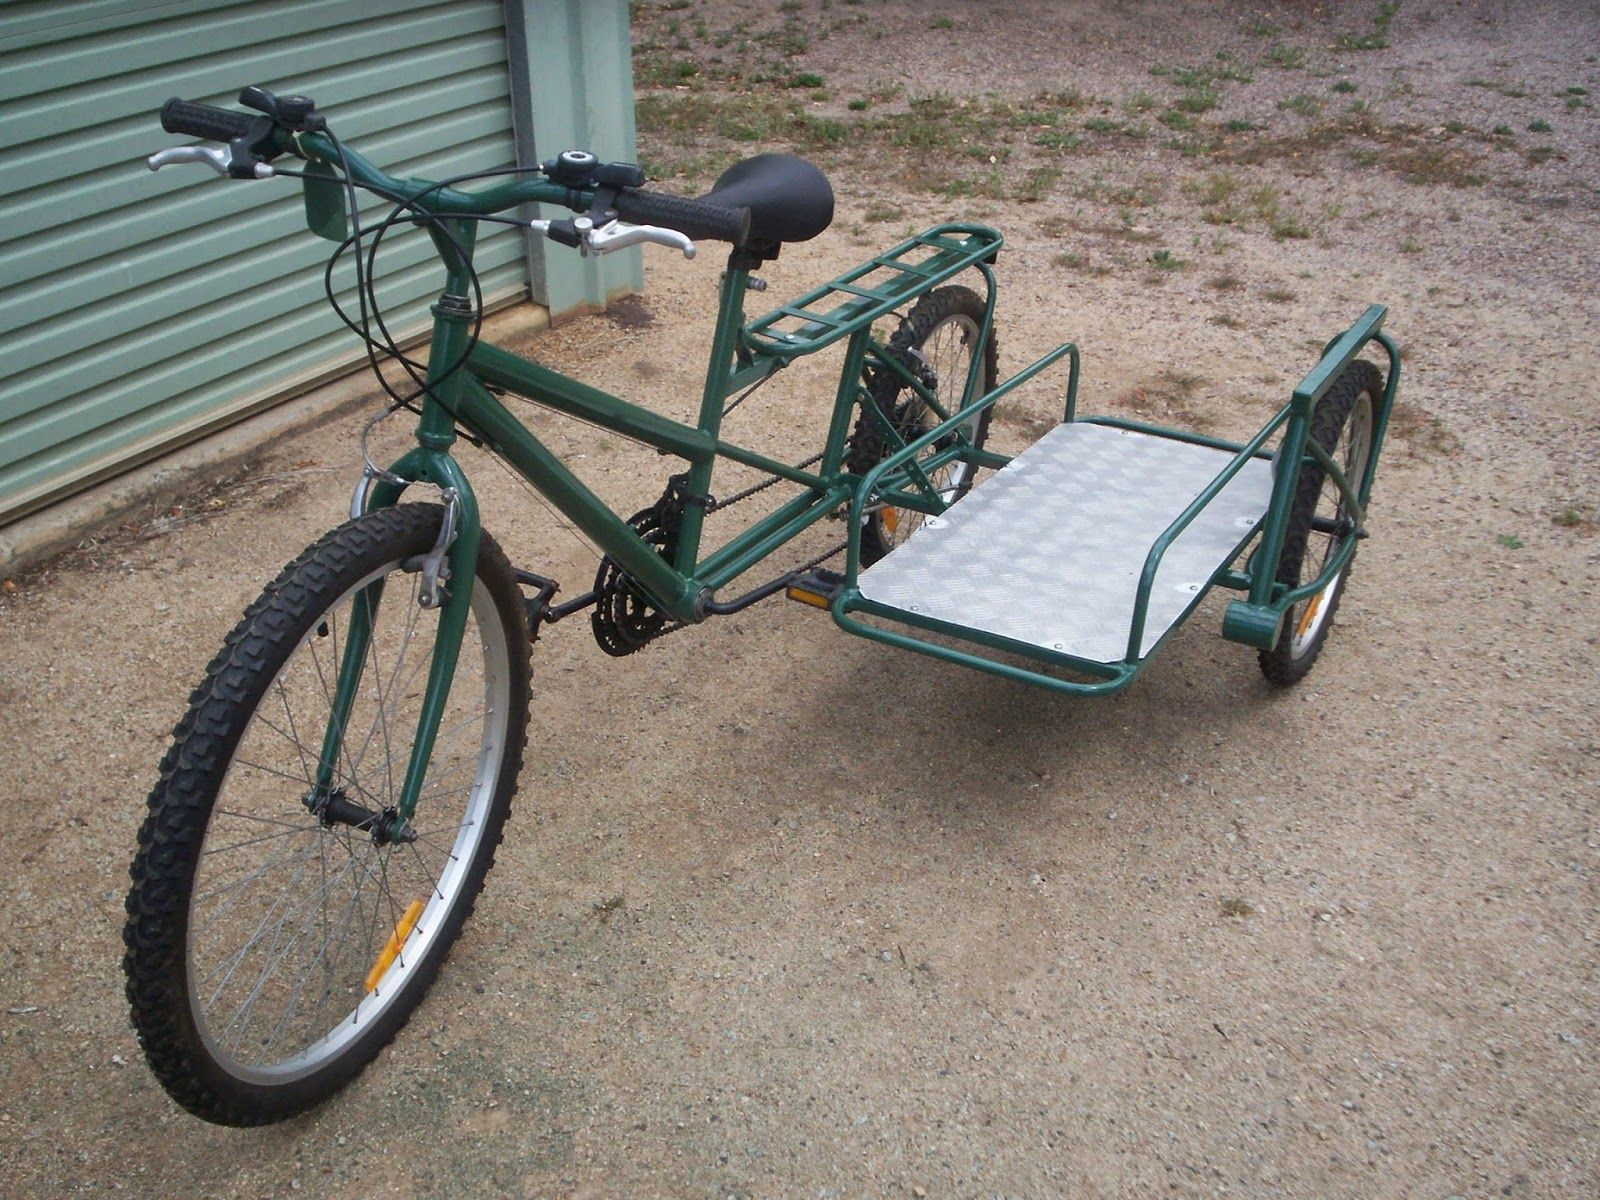 Bicycles Modified: Bicycle with Side Car | Transportation - Bikes